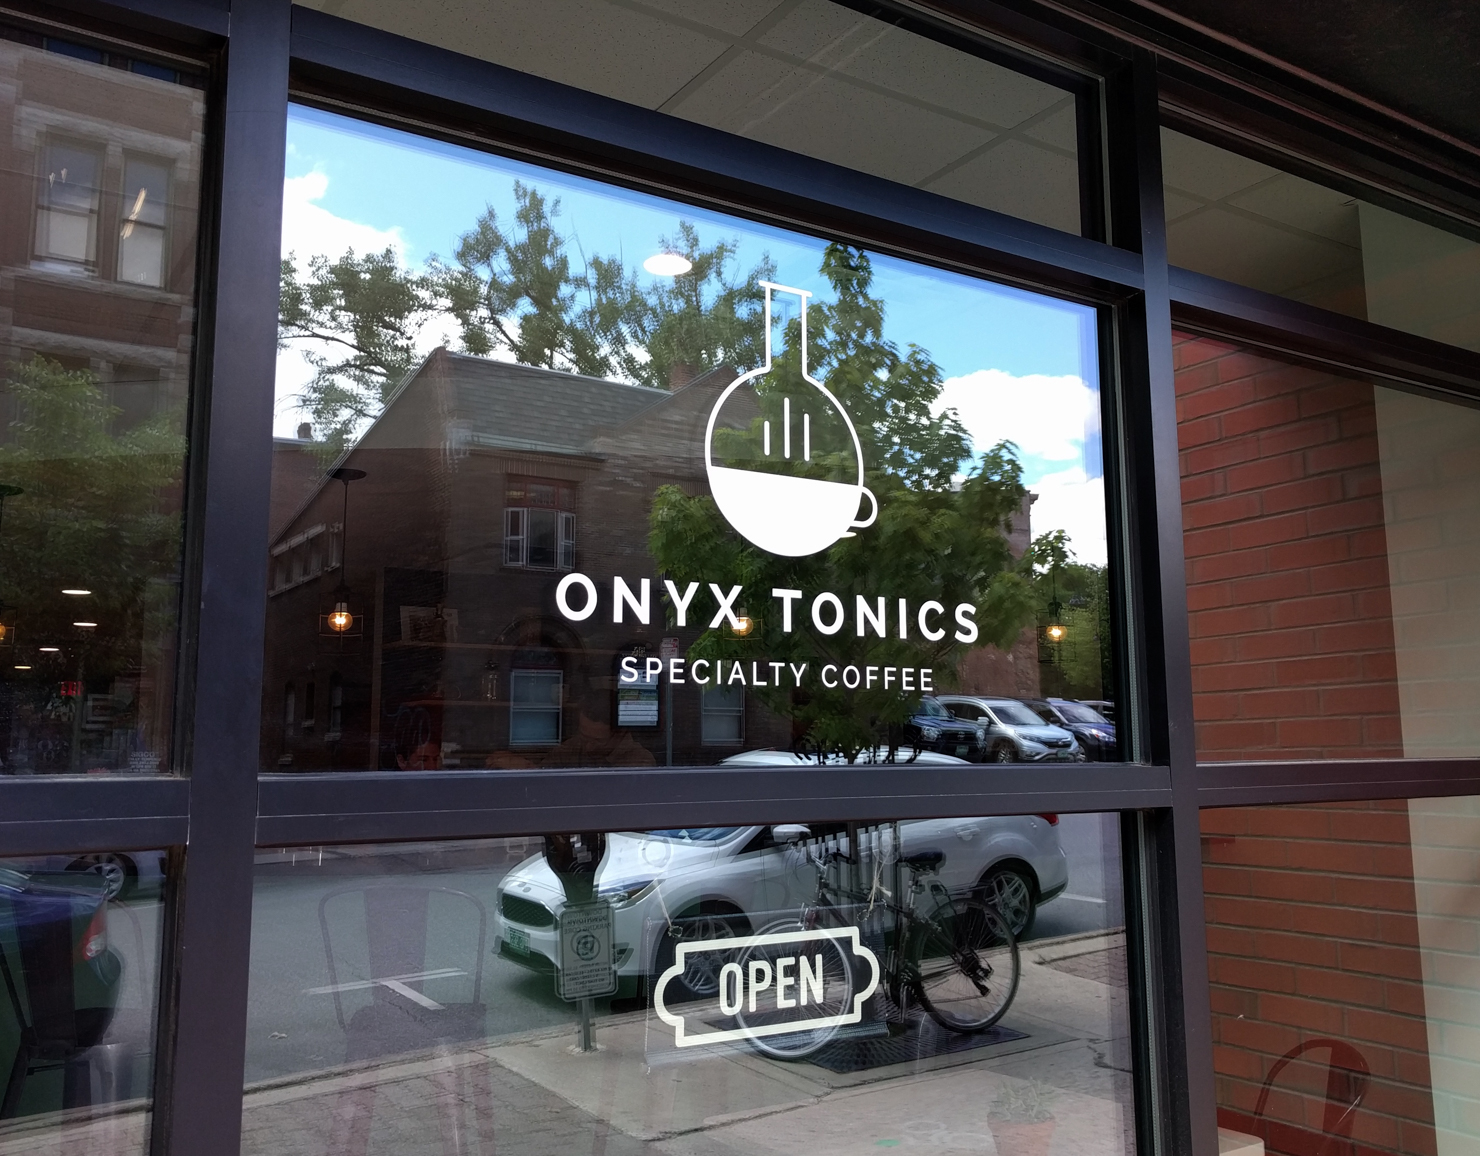 build-outs of summers onyx tonics burlington vermont cafe coffee sprudge